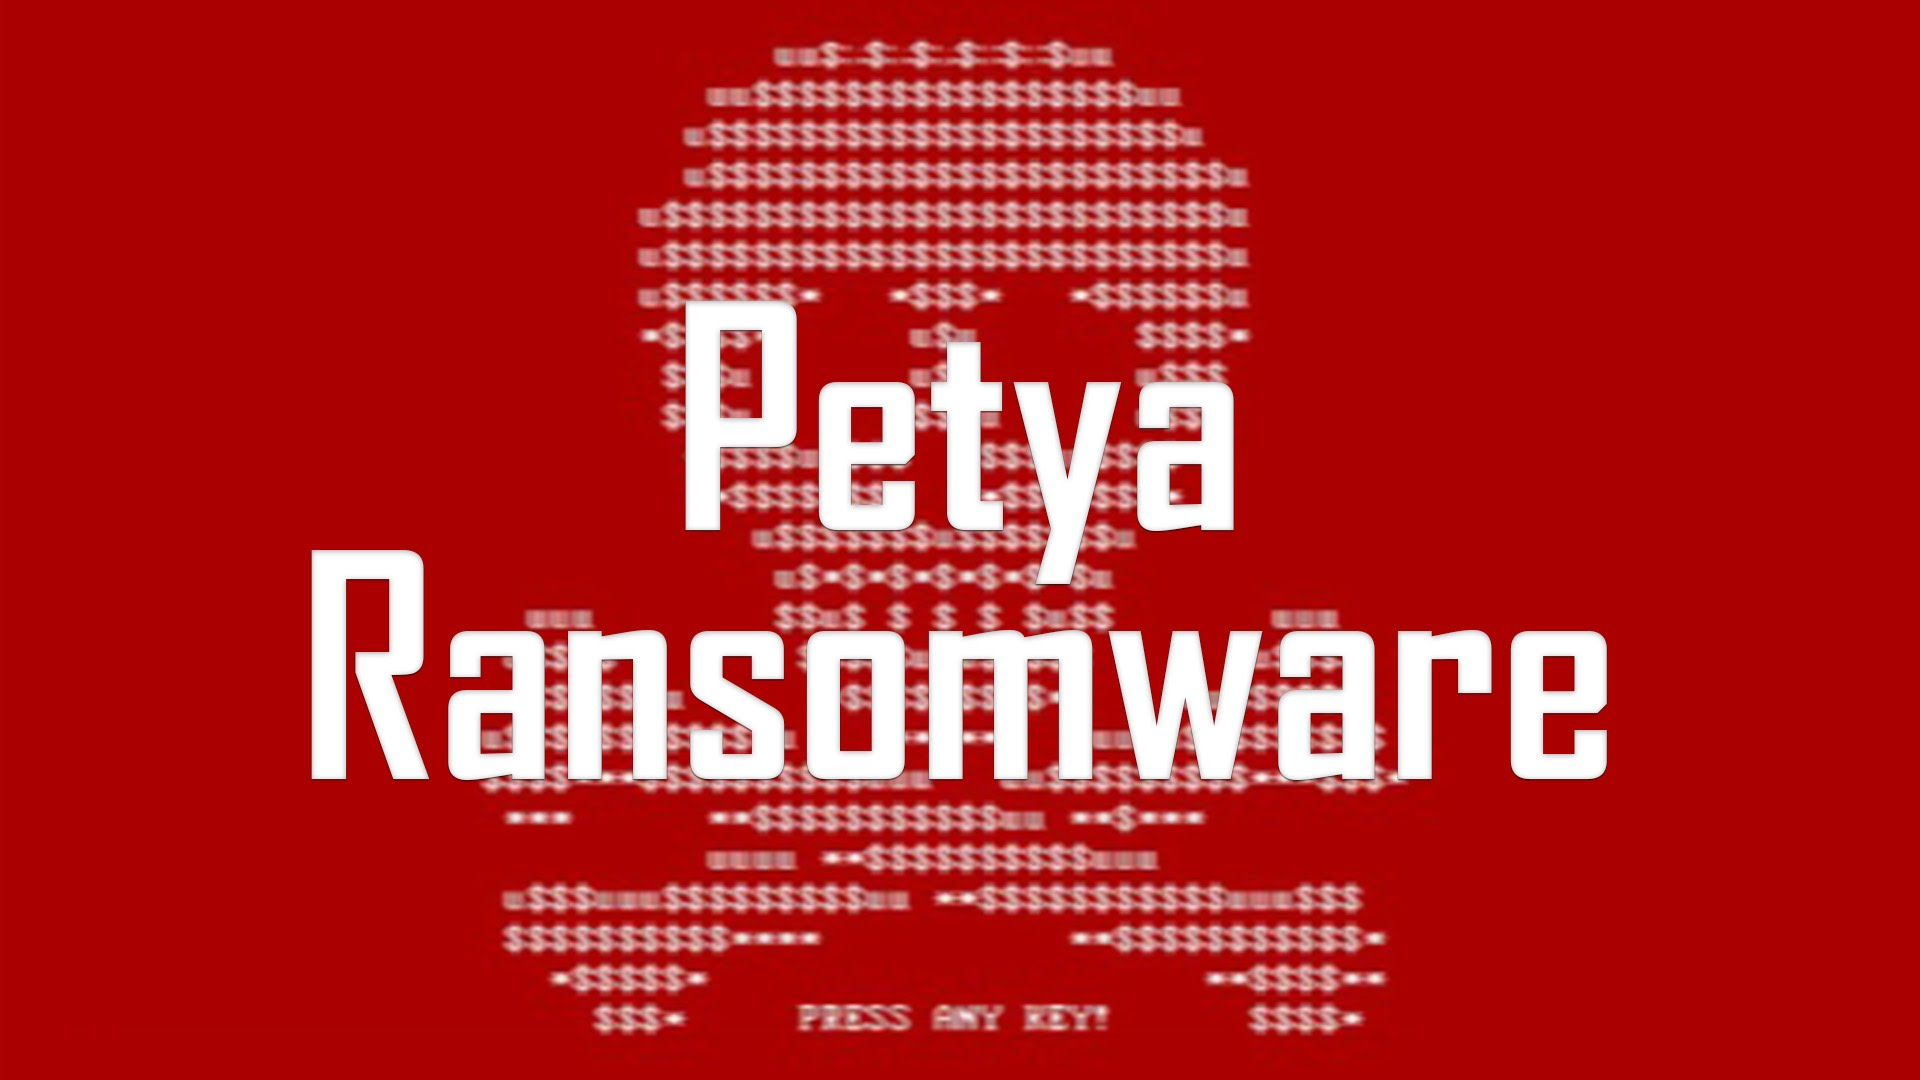 Đây không phải là biến thể của Ransomware Petya như đã đưa tin.